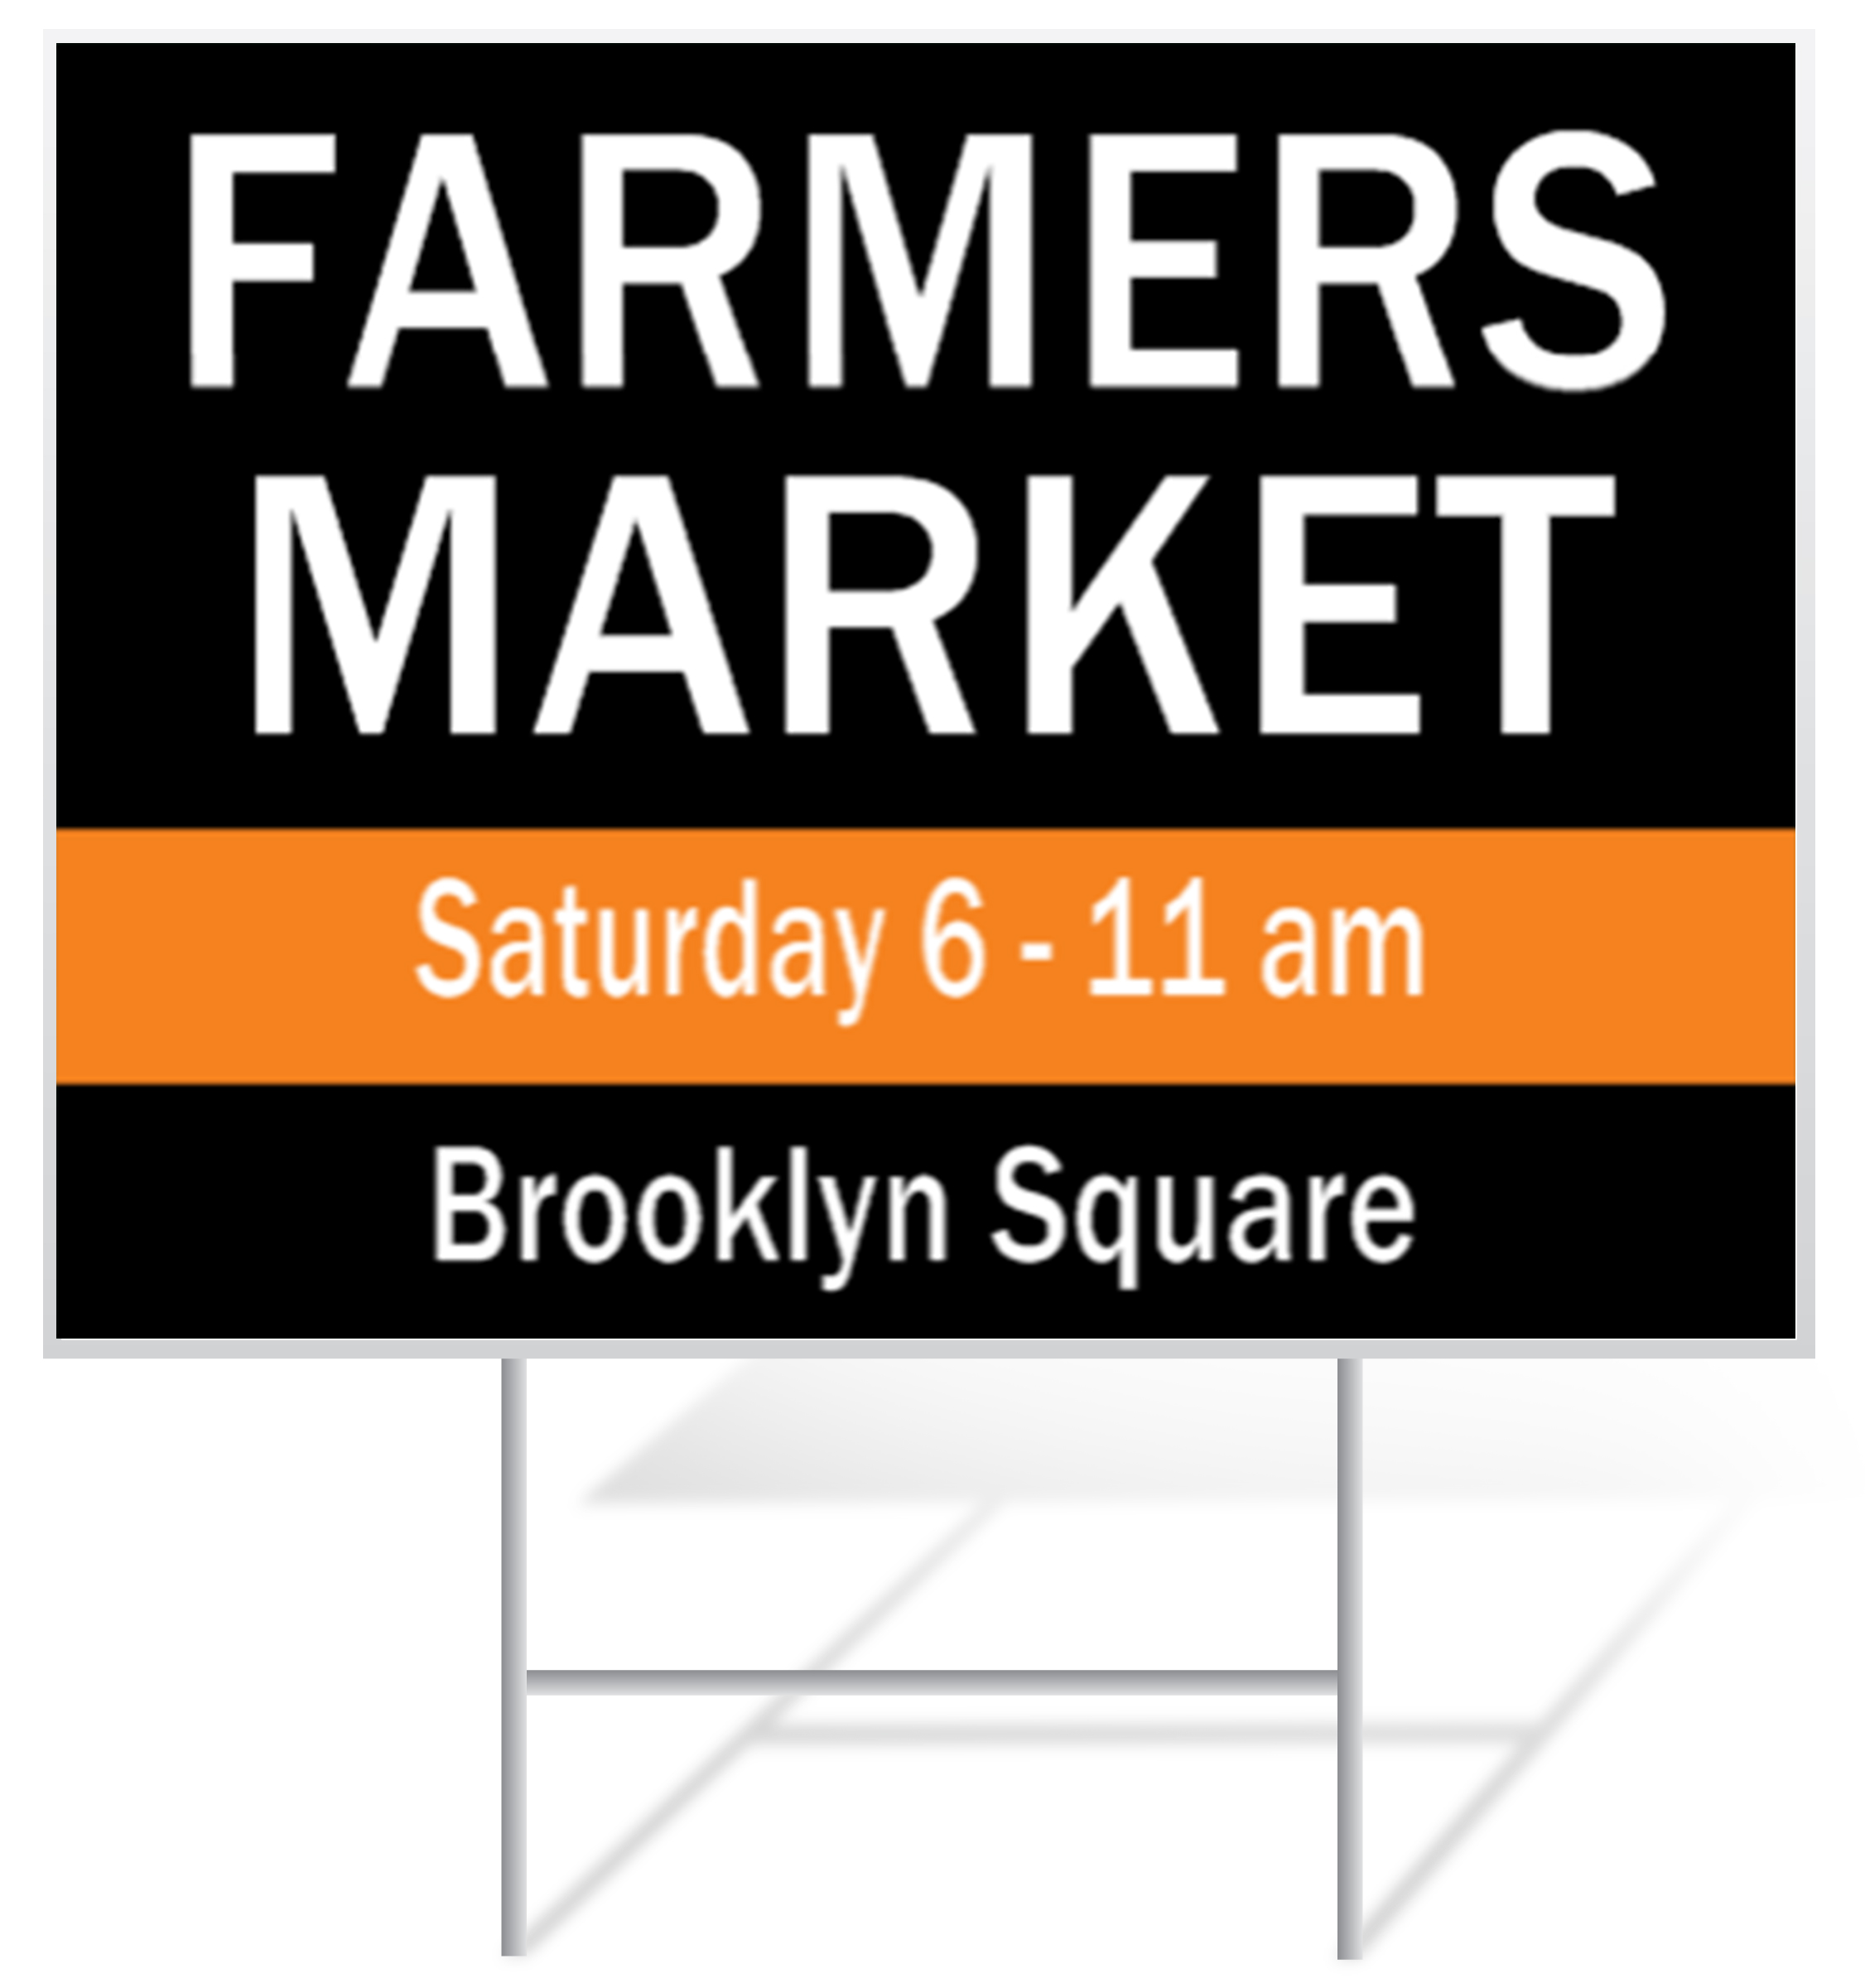 Farmers Market Lawn Sign Example | LawnSigns.com